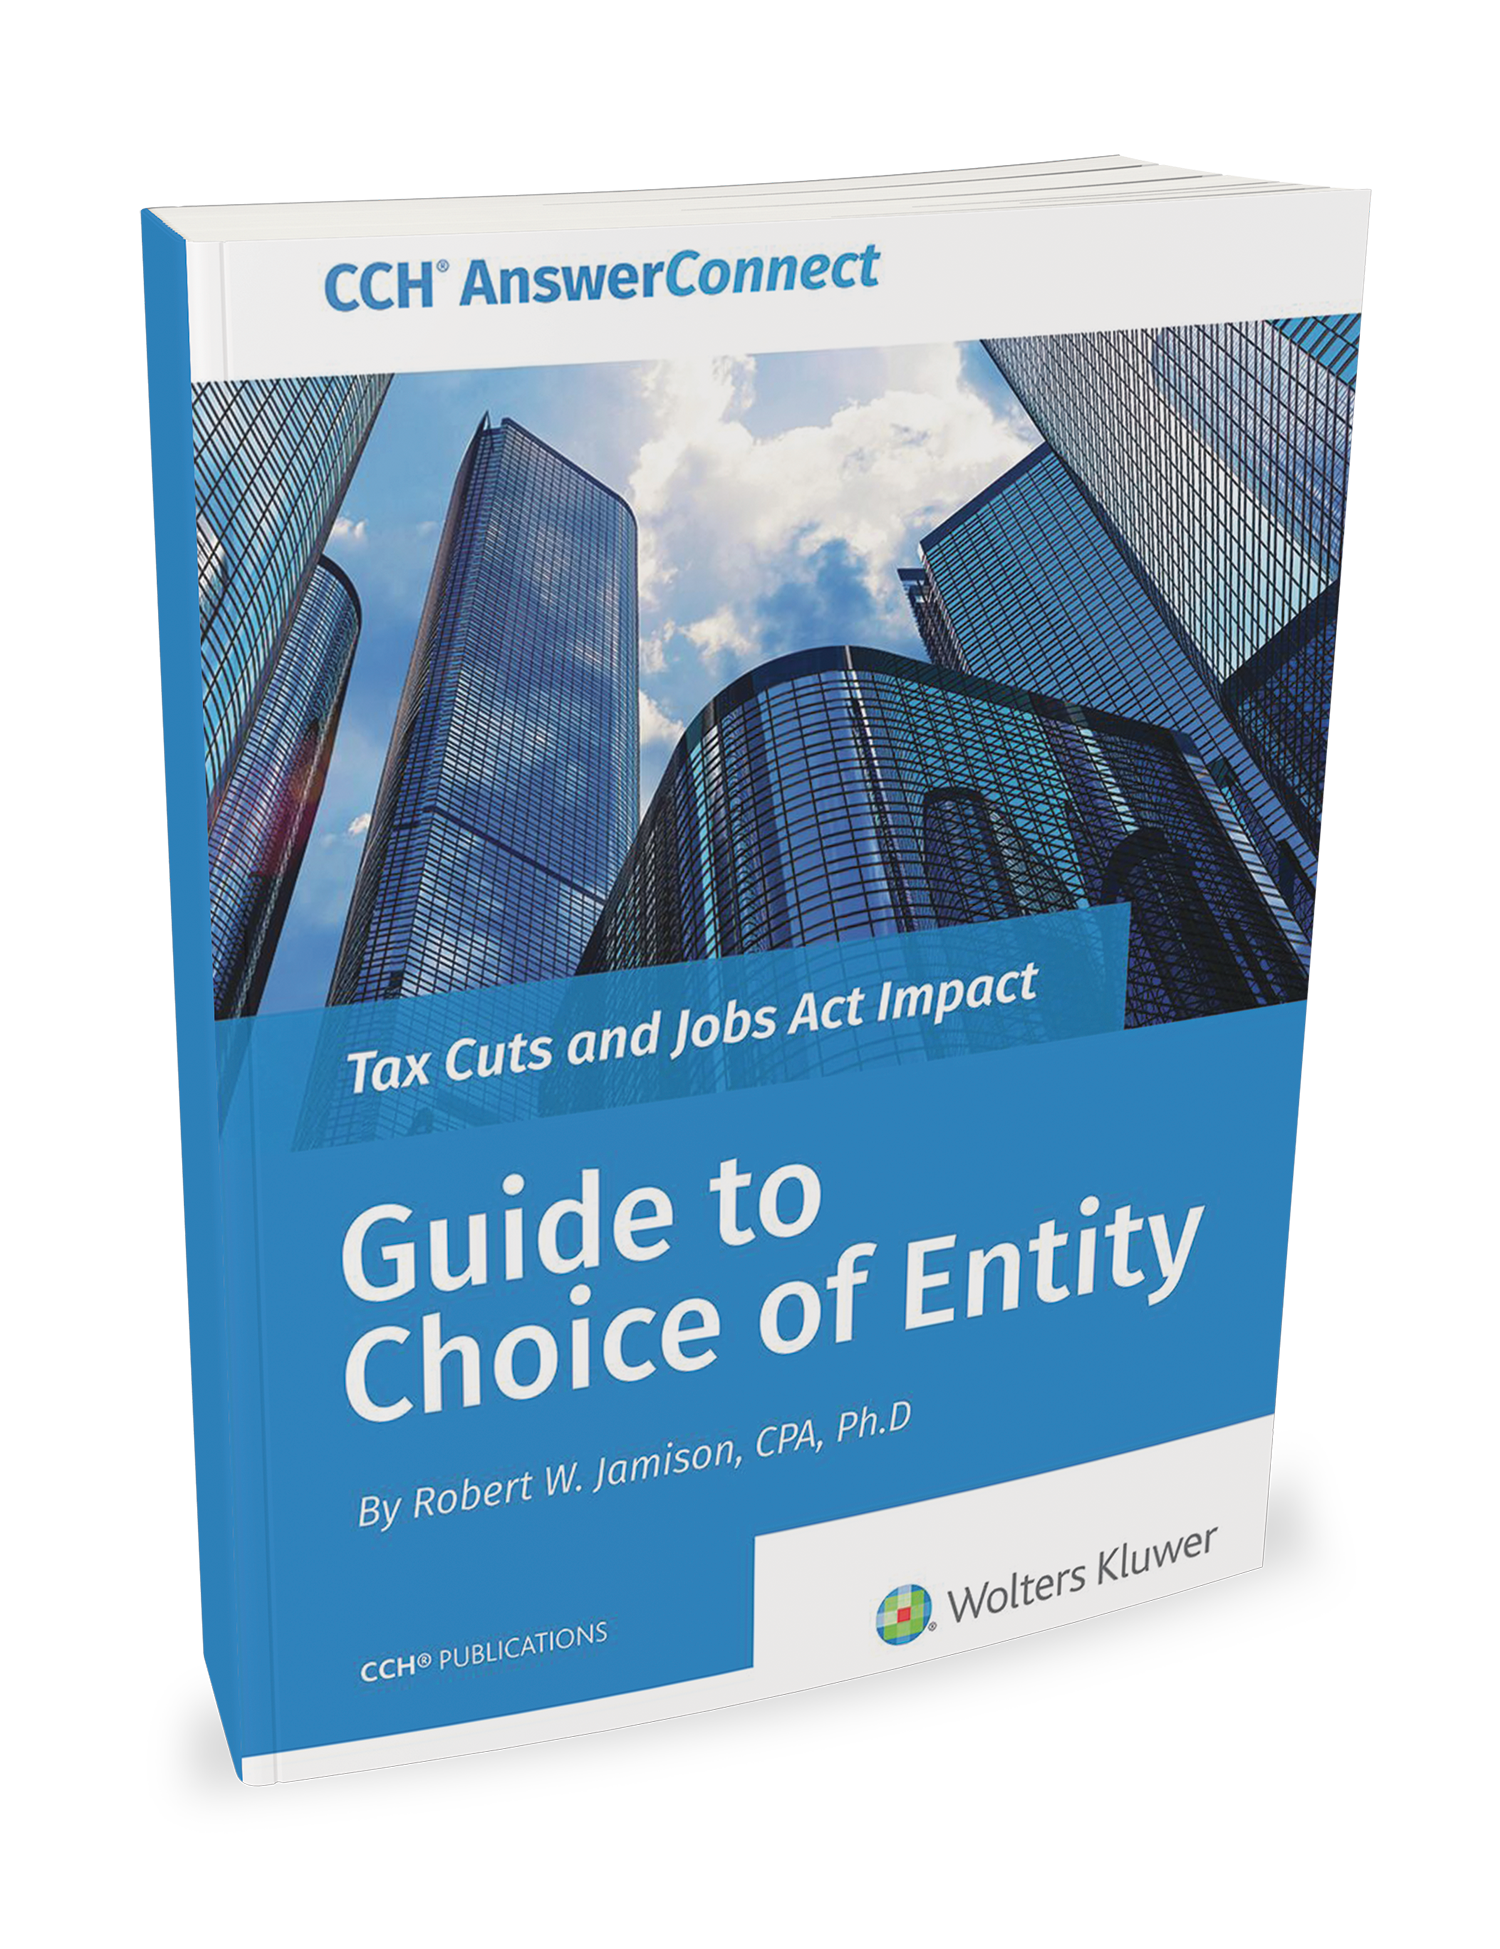 CCH Guide to Choice of Entity (2018) - #3896